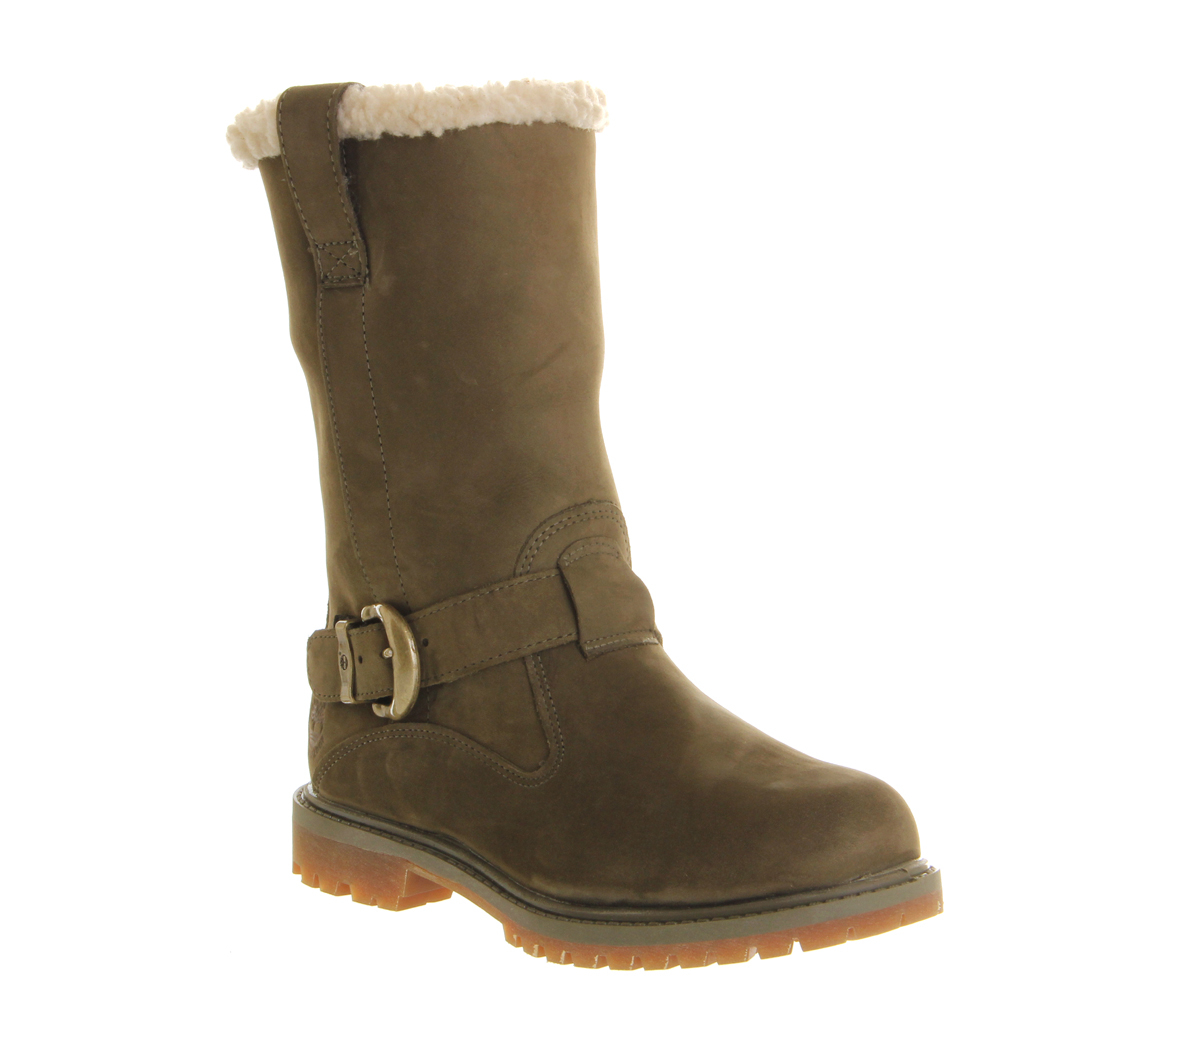 timberland nellie pull on boot in green olive lyst